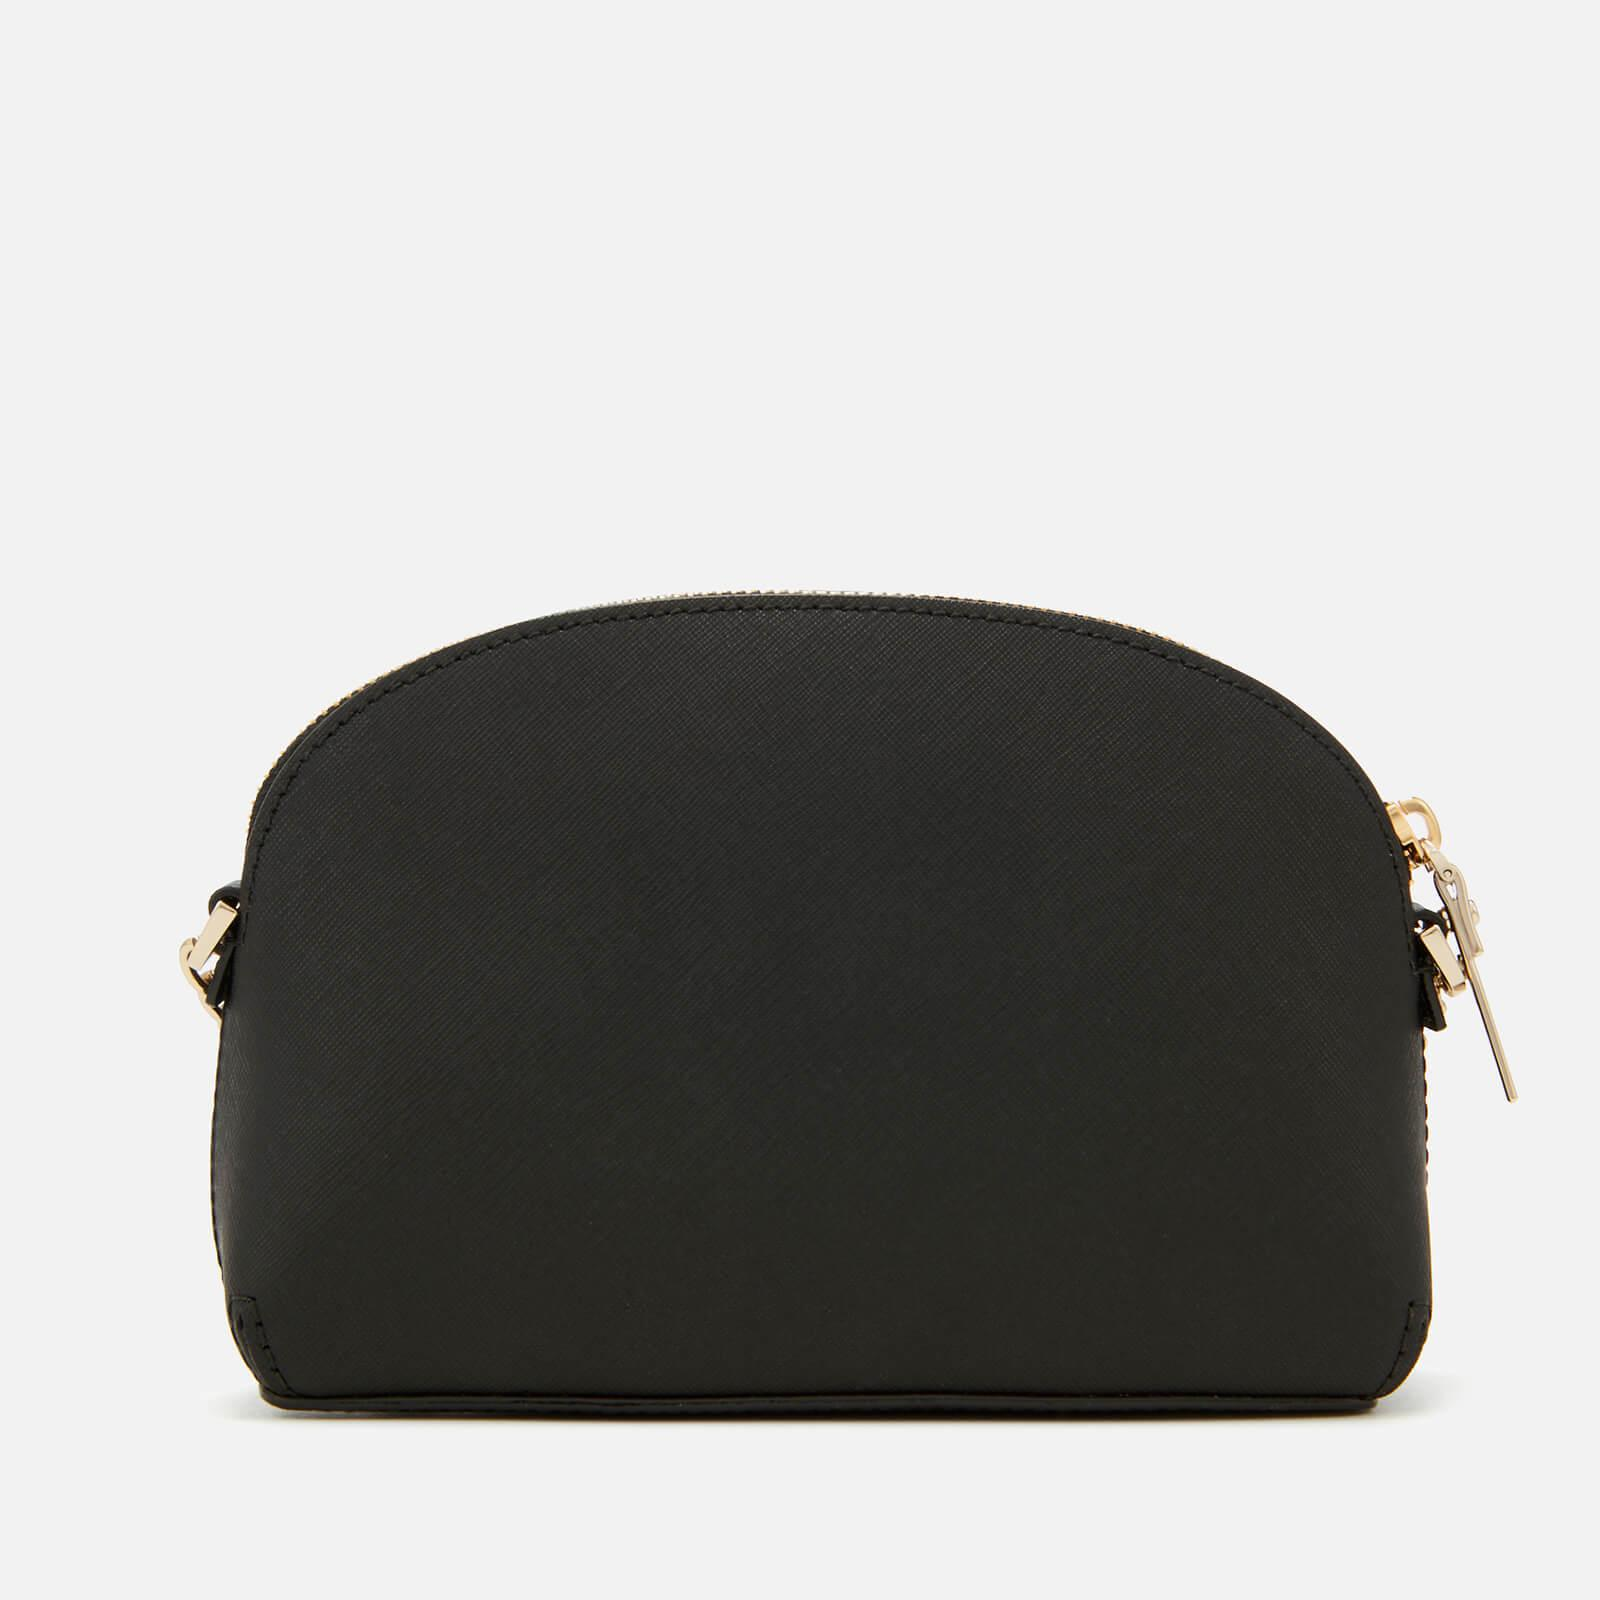 Kate Spade Leather Hilli Wallet in Black